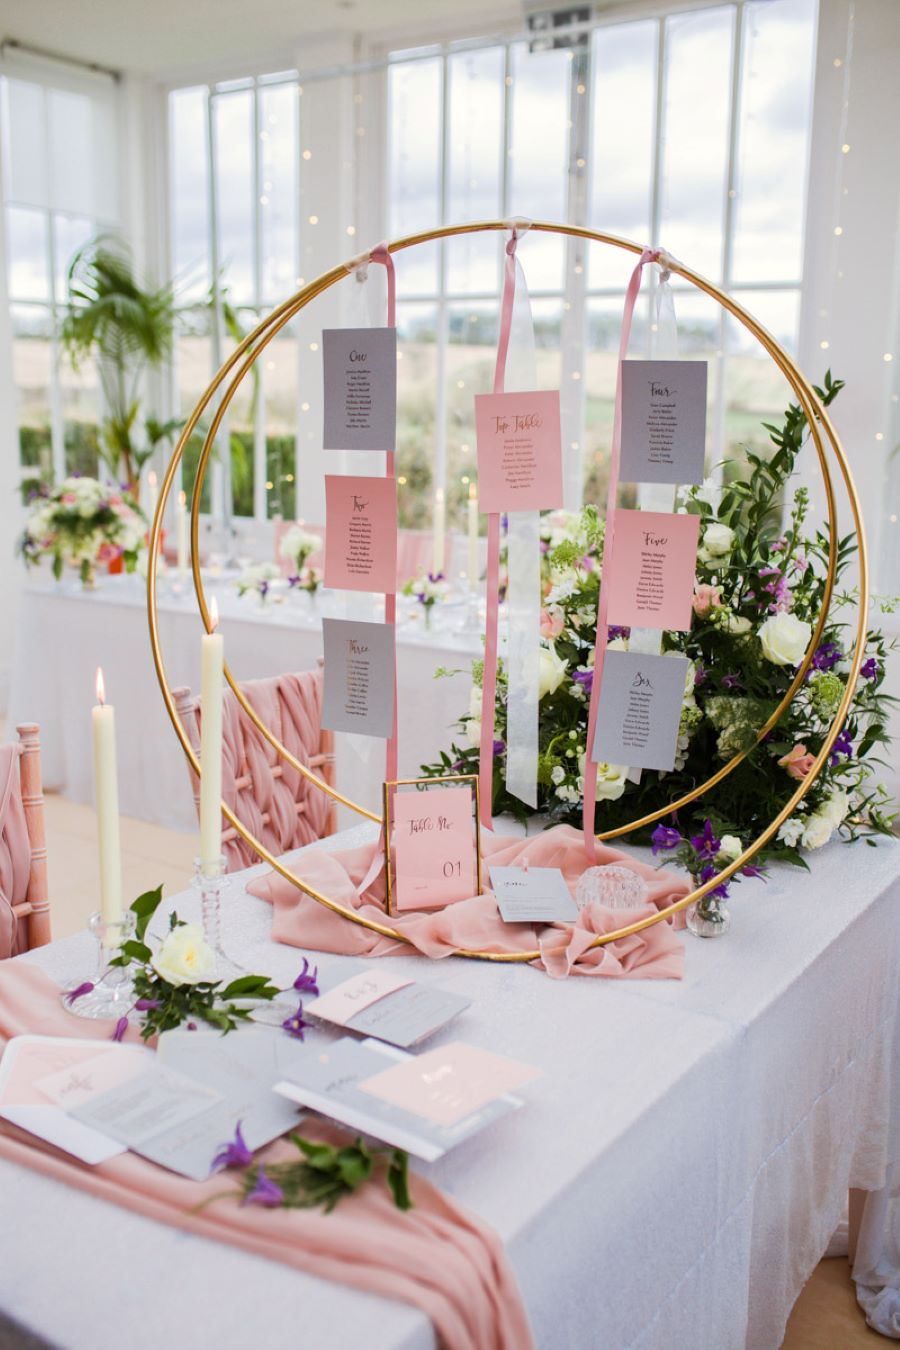 Light and romance with natural blush tones - wedding ideas from Downham Hall. Photographer credit Magical Moments Photography (5)